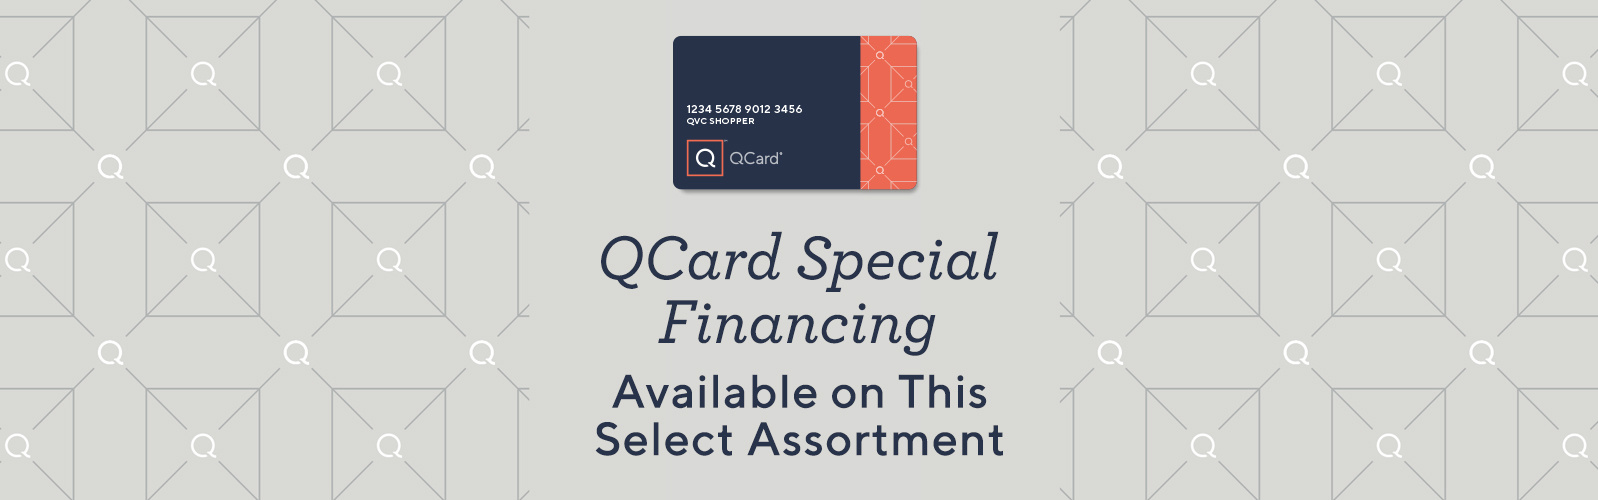 QCard Special Financing Available on This Select Assortment